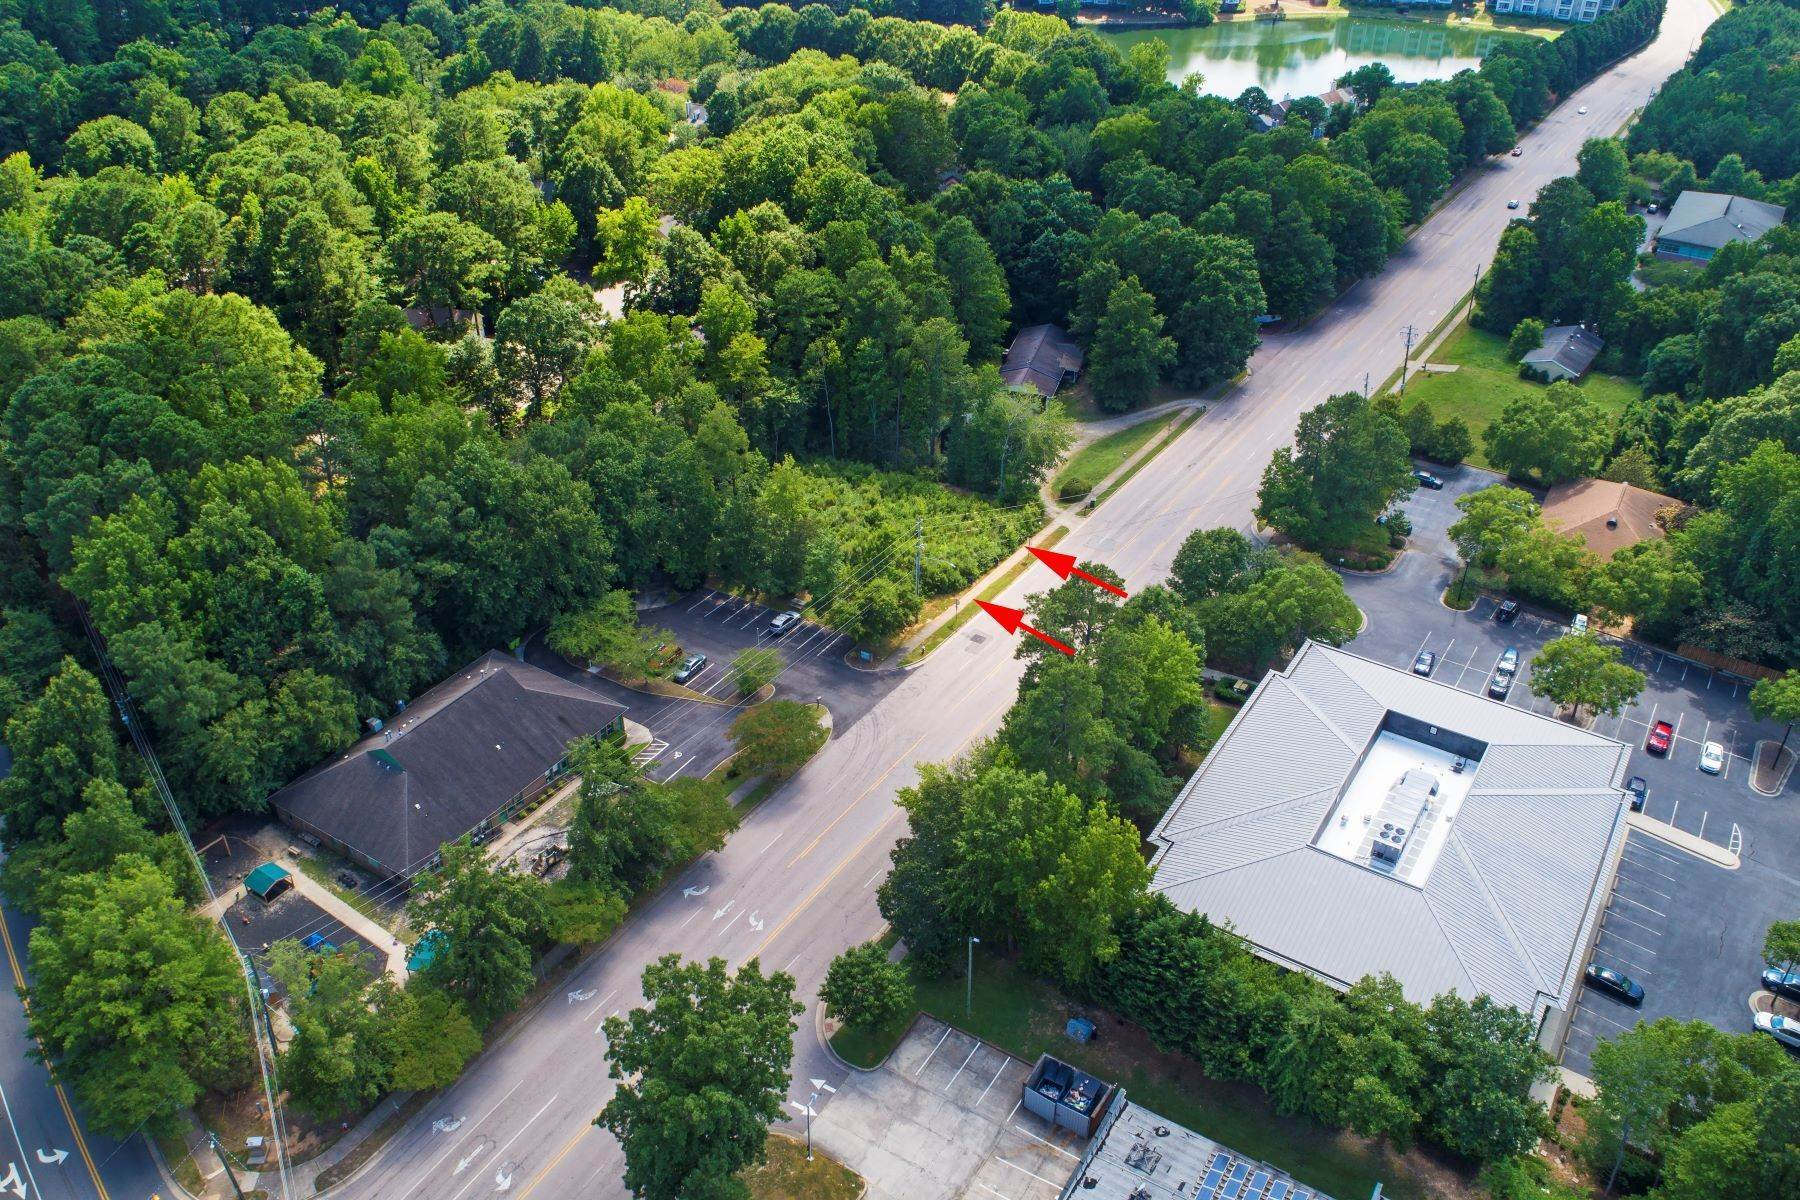 3. Land for Sale at 203 High House Rd. Cary, NC 203 High House Rd. Cary, North Carolina 27513 United States